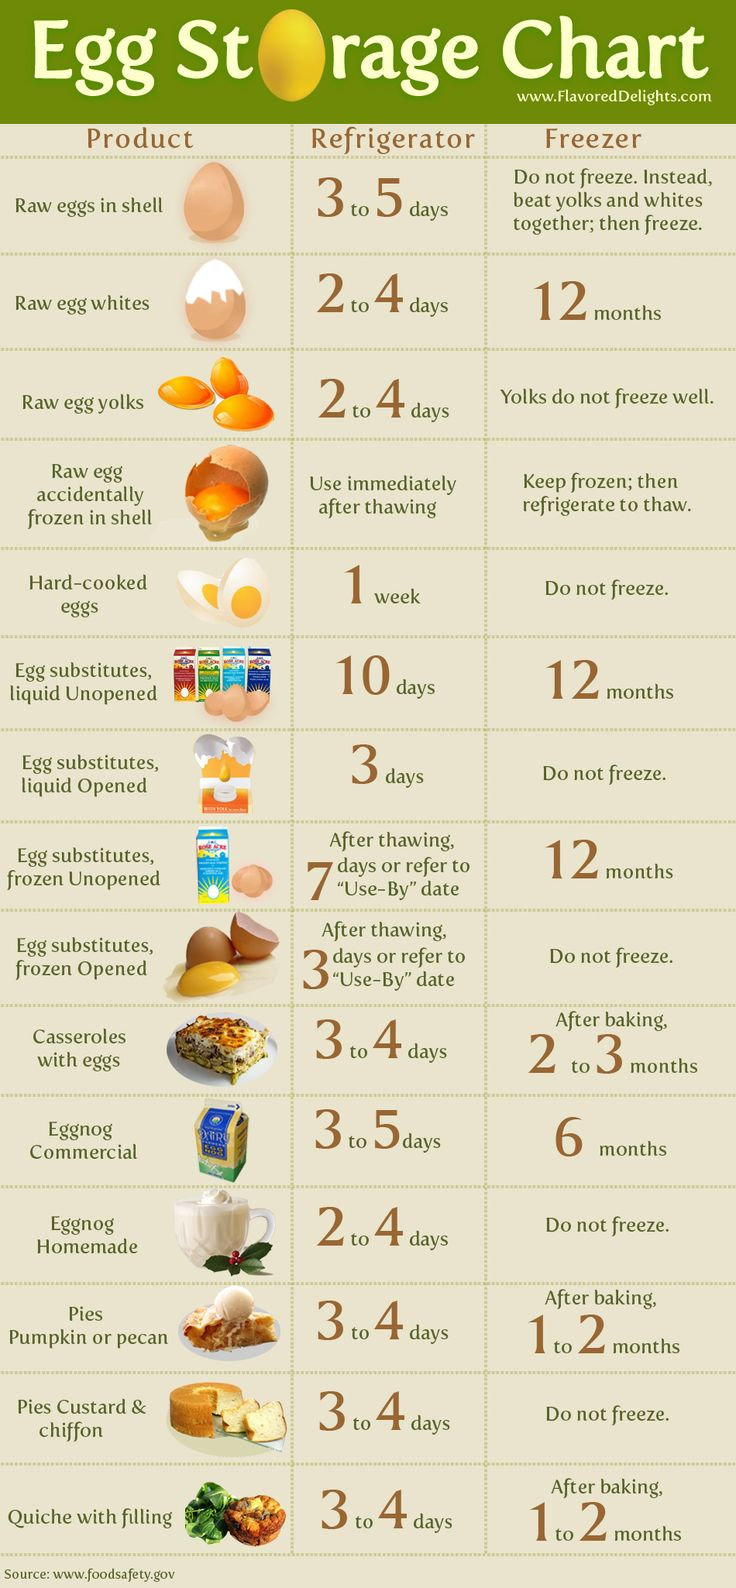 This #egg storage chart helps you to determine how to store your eggs and egg products safely.